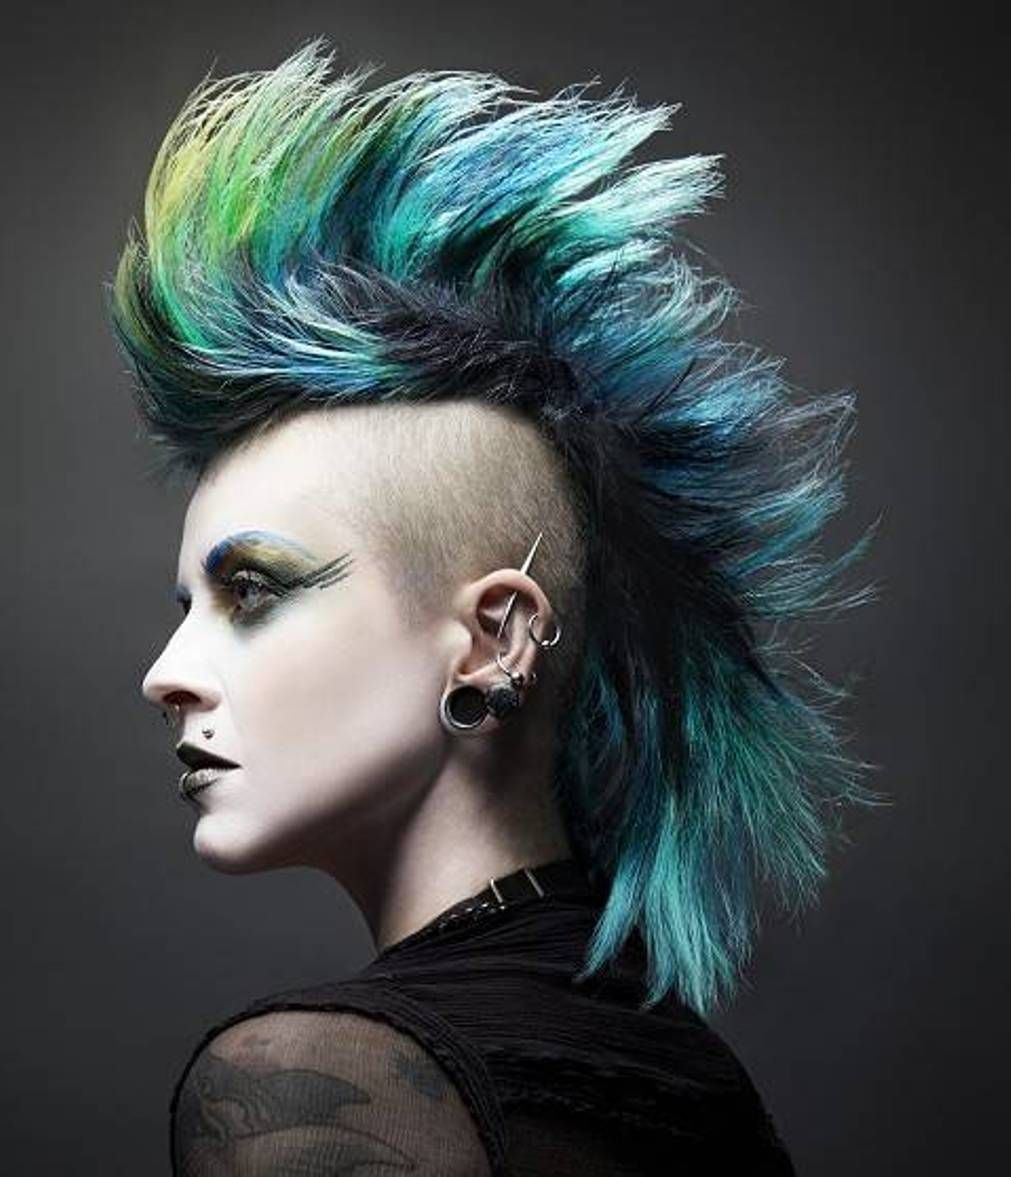 The New Punk Mens Hairstyles Still Retain The Rebellious Look But